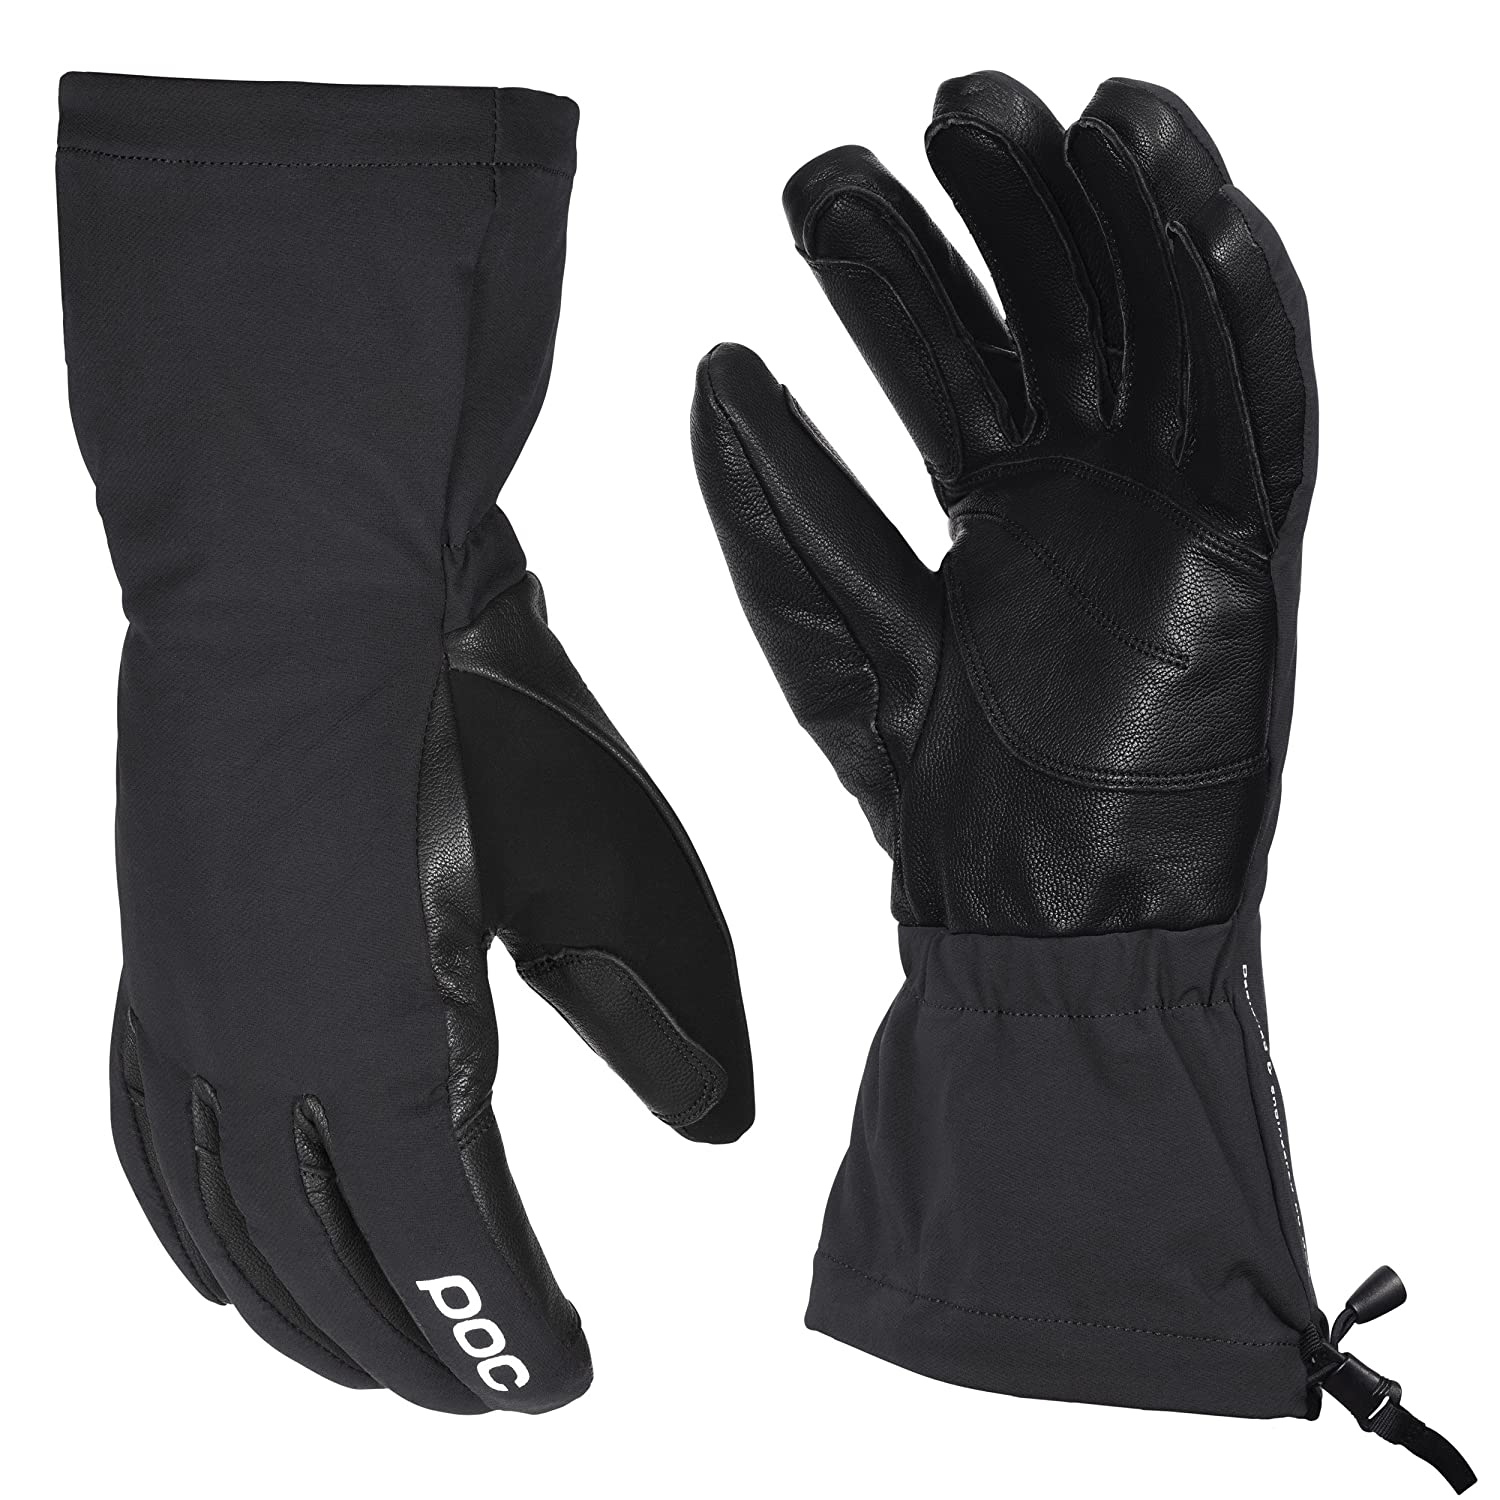 POC Handschuhe Wrist Gloves Big